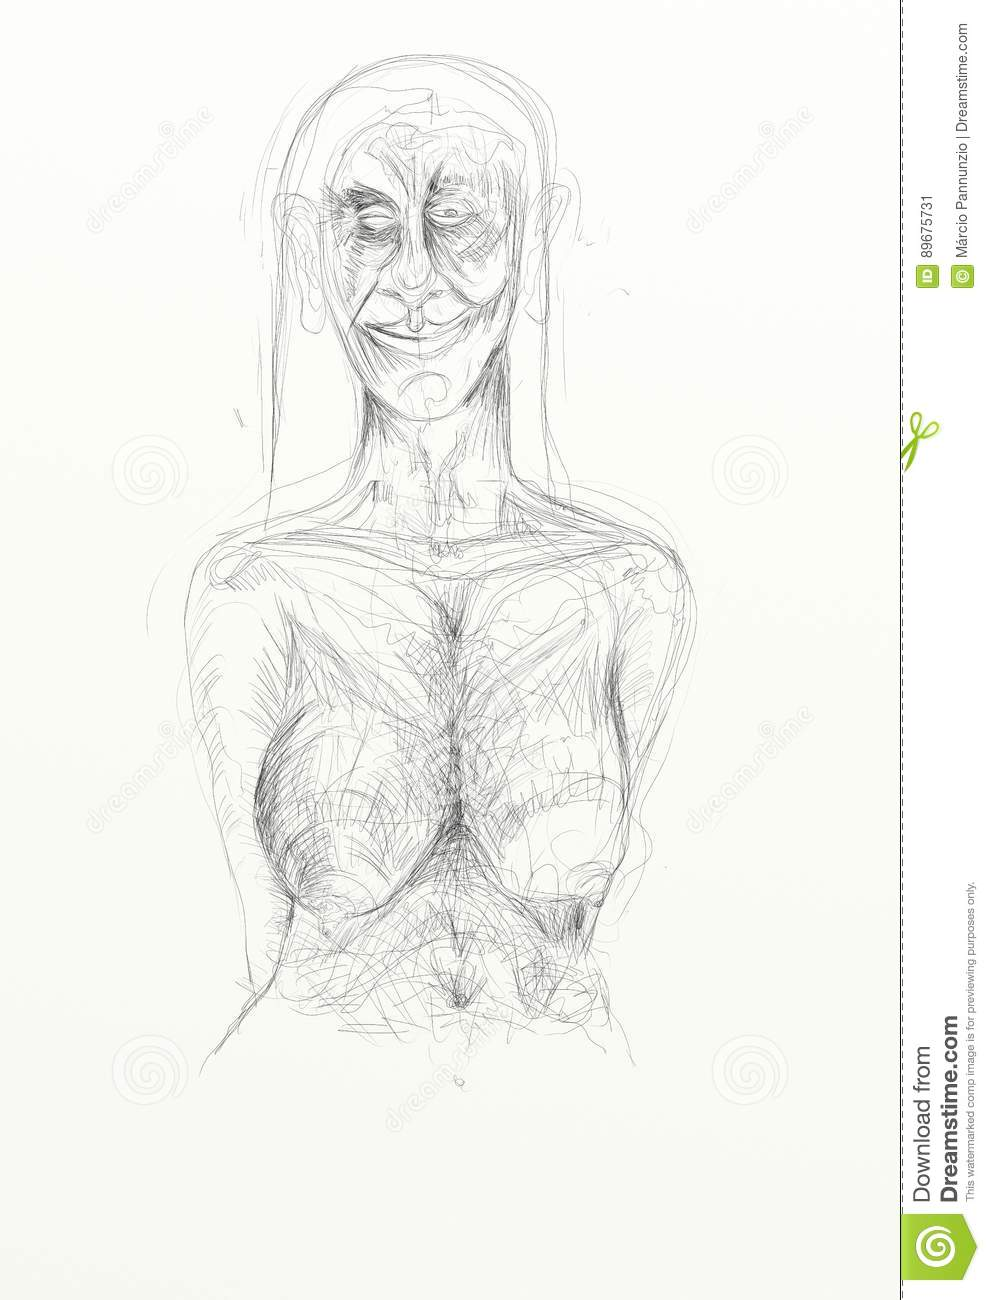 Digital drawing pencil vertical format depicting naked human figures melancholy lonely